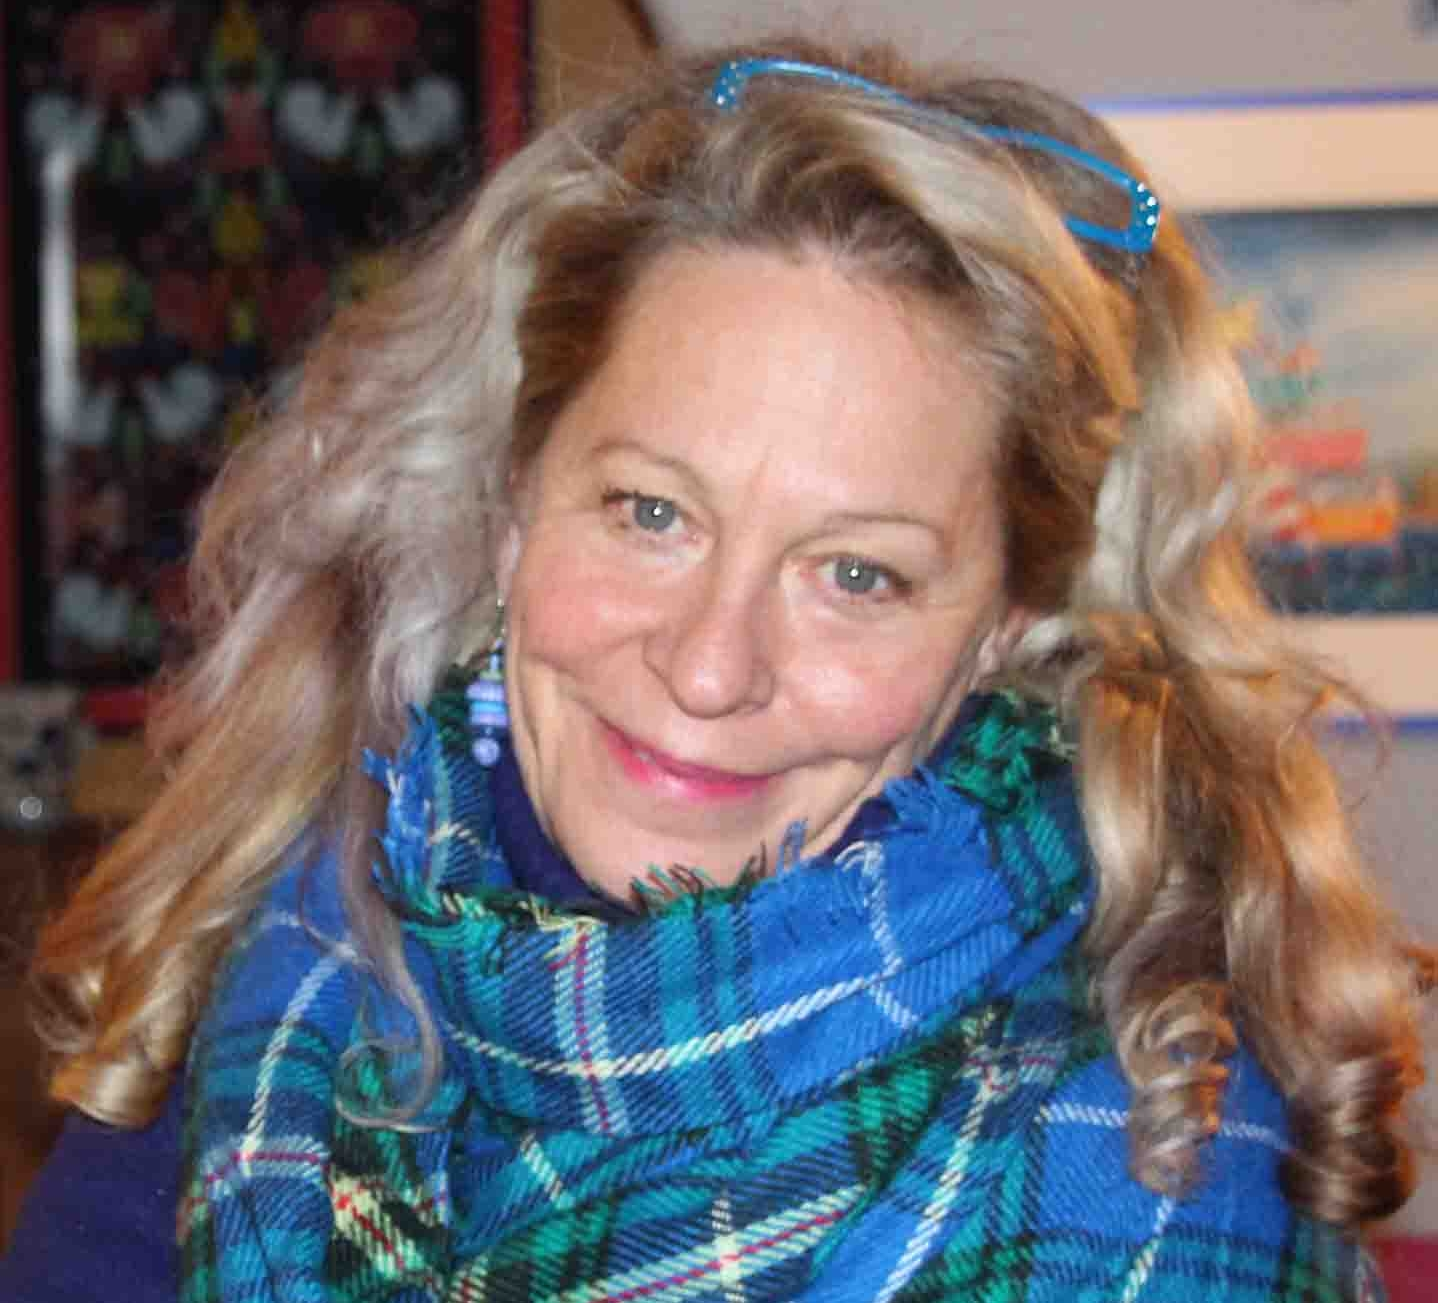 """Sheree Fitch's - first two books,Toes in My Nose(1987) and Sleeping Dragons All Around(1989), launched her career as a poet, rhymster, and a """"kind of Canadian female Dr. Seuss."""" Fitch has won almost every major award for Canadian children's literature since then, including the 2000 Vicky Metcalf Award for a Body of Work Inspirational to Canadian Children. She has over twenty-five books to her credit, including her bestselling and critically praised adult novel,Kiss the Joy As It Flies(2008). Fitch lives in River John, Nova Scotia, where in July 2017 she opened Mable Murple's Book Shoppe and Dreamery, a one-of-a-kind bookstore and literary venue."""